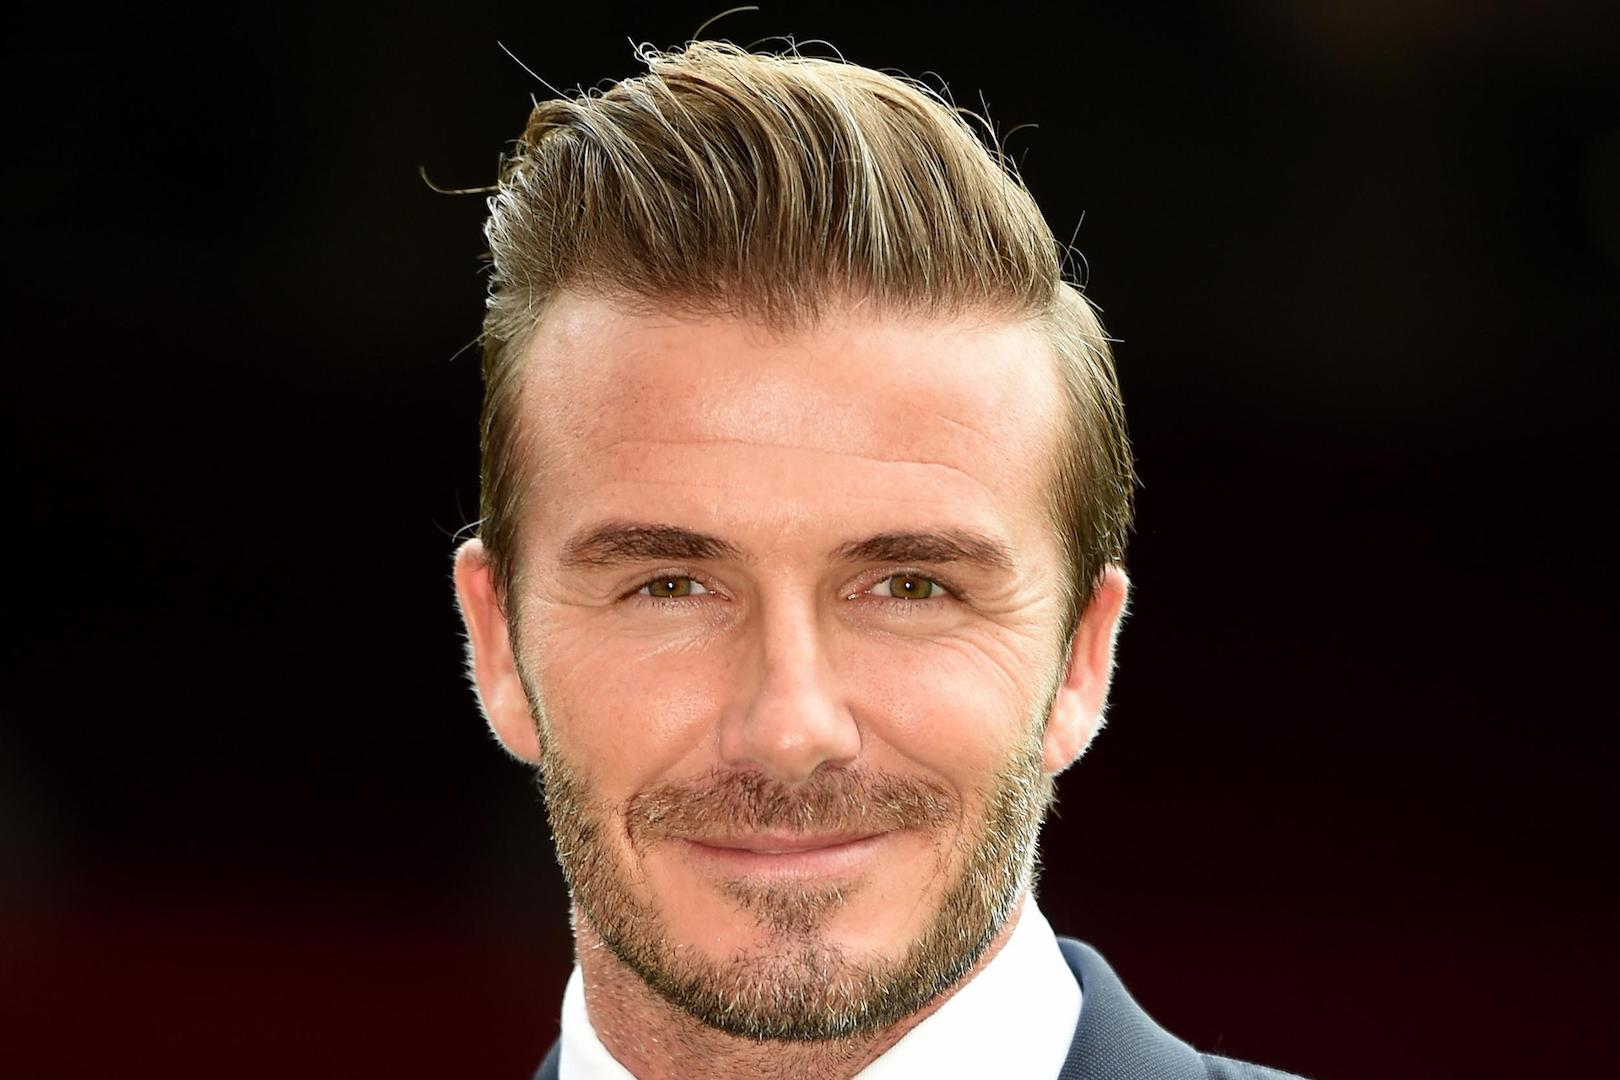 David Beckham targets golf course